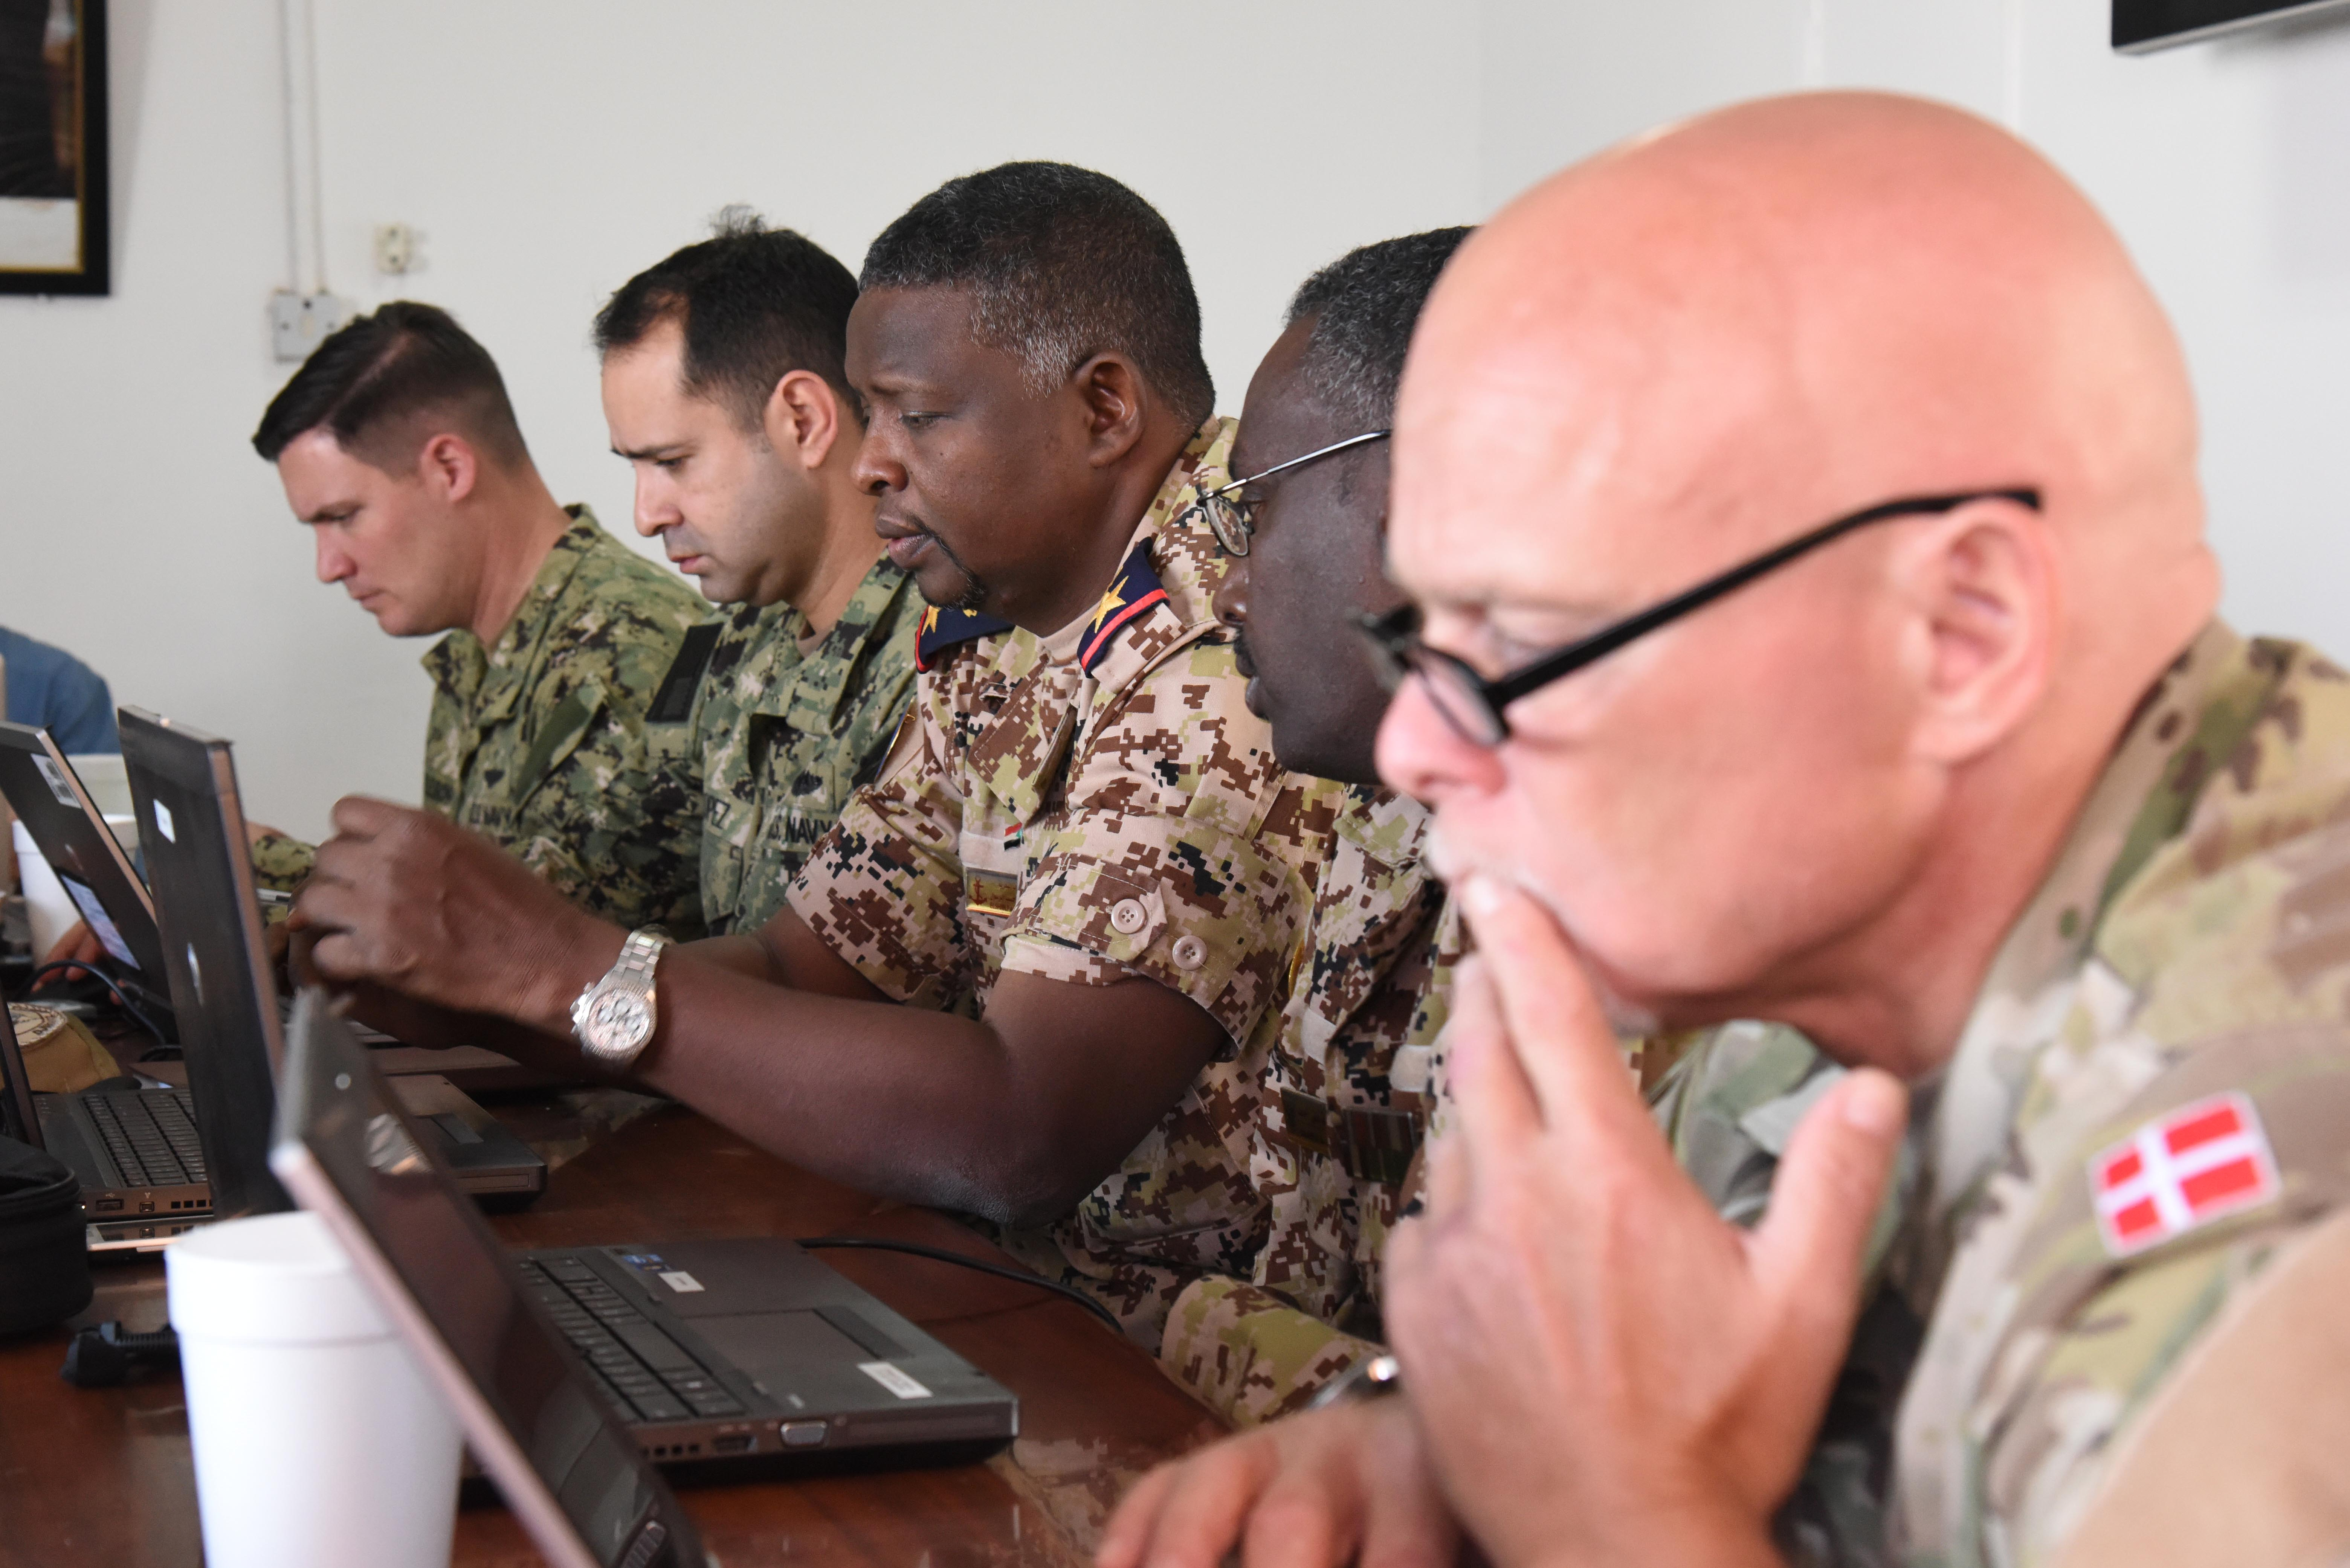 U.S., Sudan and Denmark Navy members follow the progression of scenarios from the exercise control group during Cutlass Express 2016 at the Port of Djibouti, Feb. 4, 2016. Exercise Cutlass Express provides an opportunity for maritime forces from eastern African, western Indian Ocean island nations, Europe, and the U.S. to work side-by-side to better synchronize maritime security operations for potential real-world scenarios.